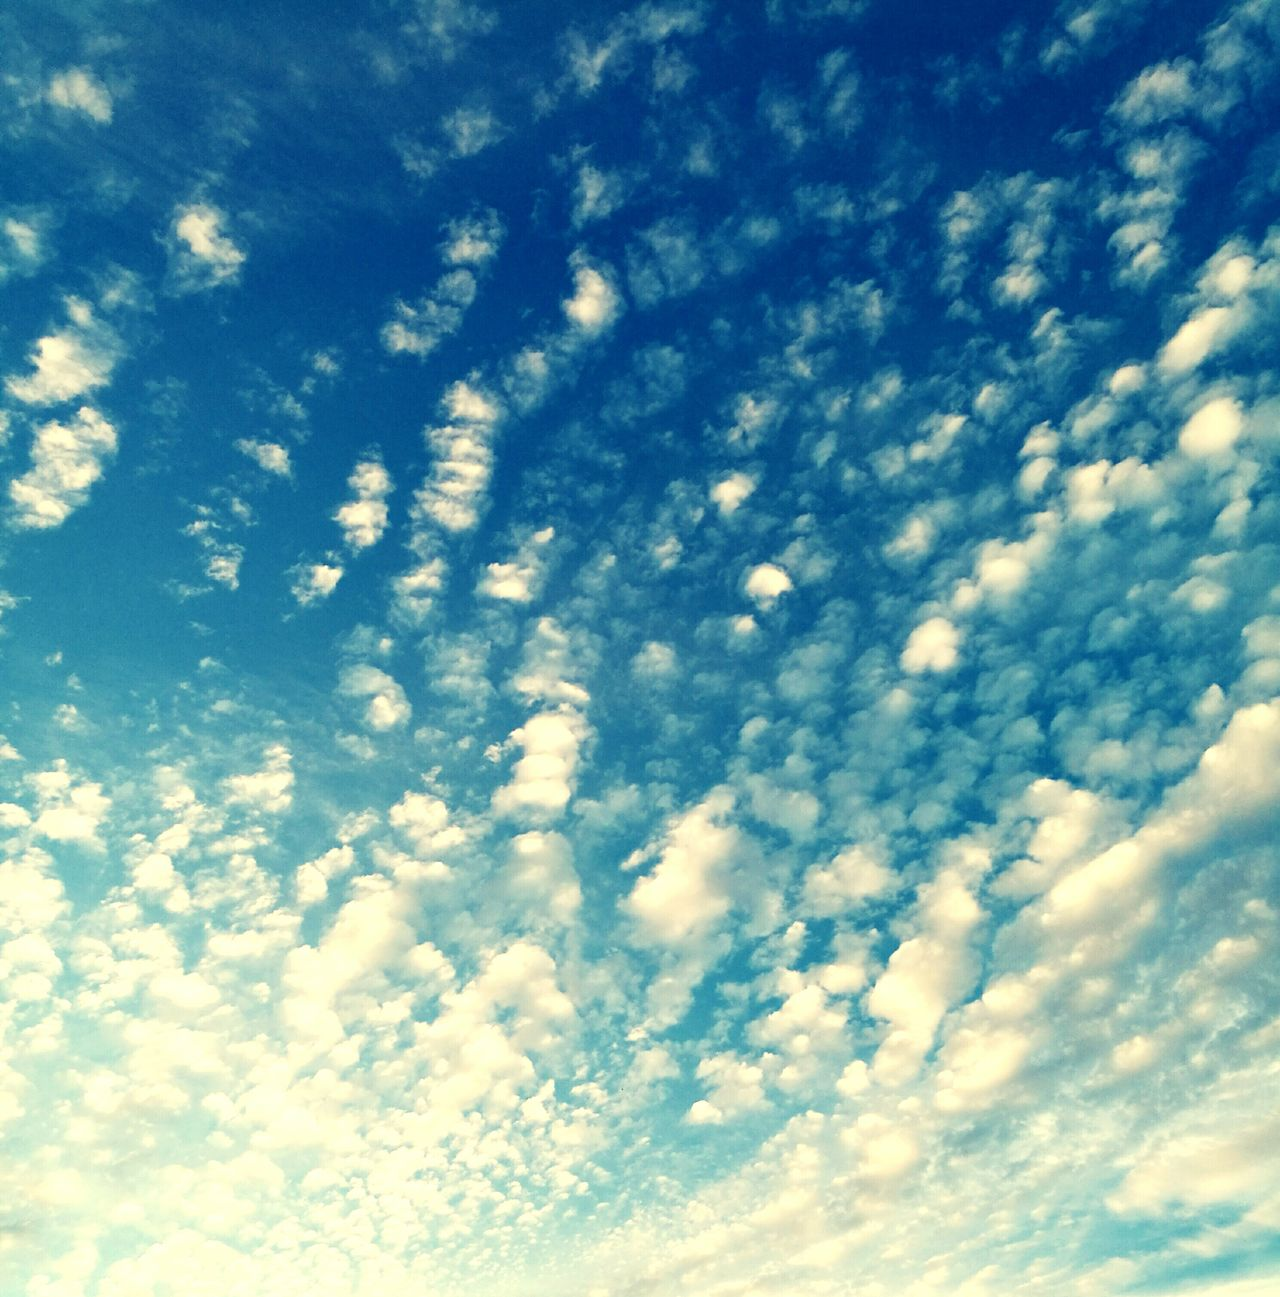 Cloud - Sky Heaven Backgrounds No People Outdoors Beauty In Nature